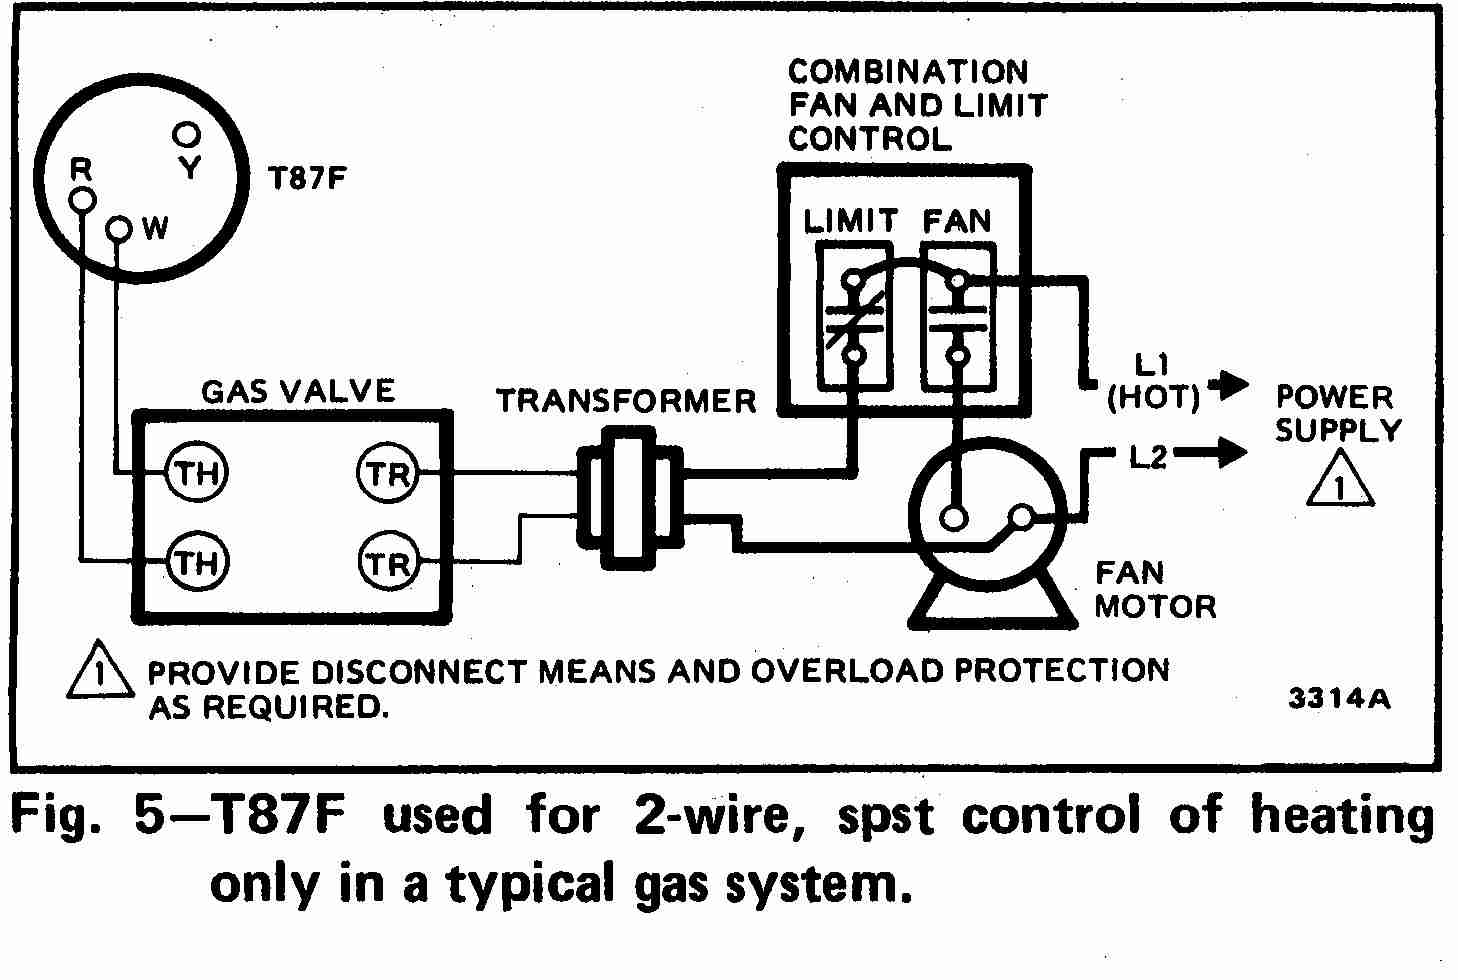 Thermostat Wiring For Furnace Only Guide And Troubleshooting Of 5 Wire Diagram Basic Heat Todays Rh 10 18 1813weddingbarn Com Colors Carrier